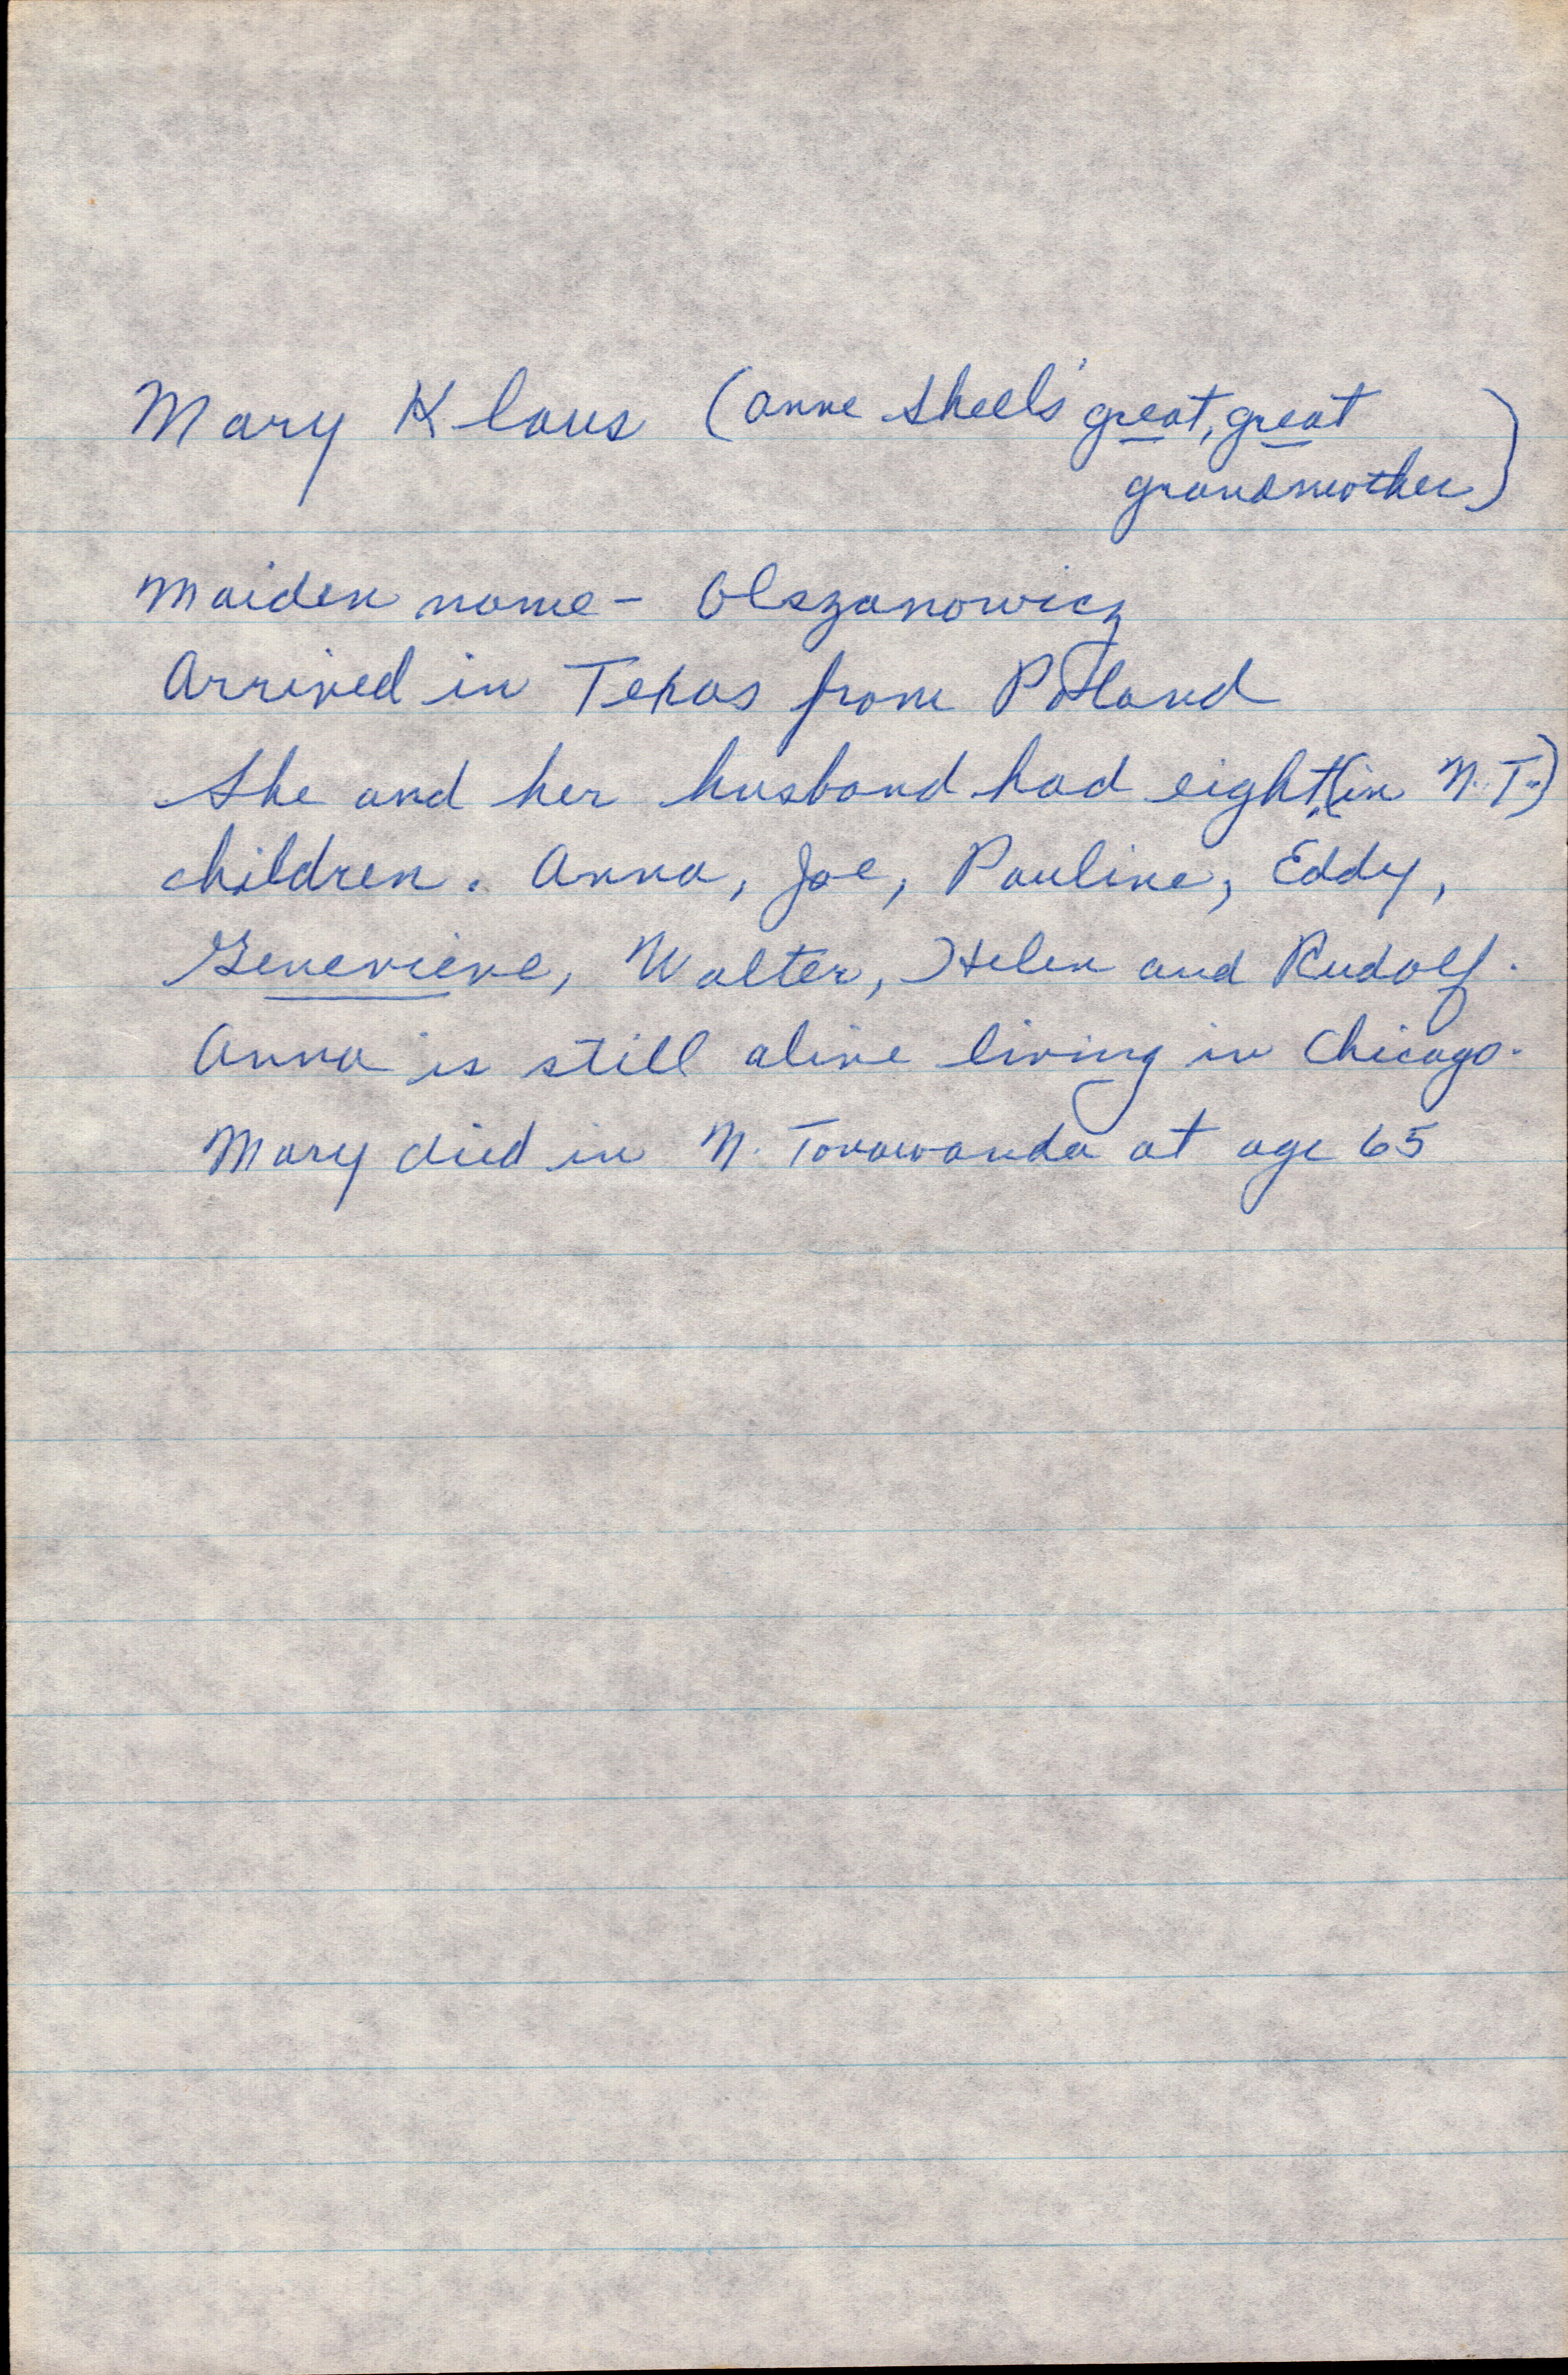 Letter from Grandma Helen 1977 page 5